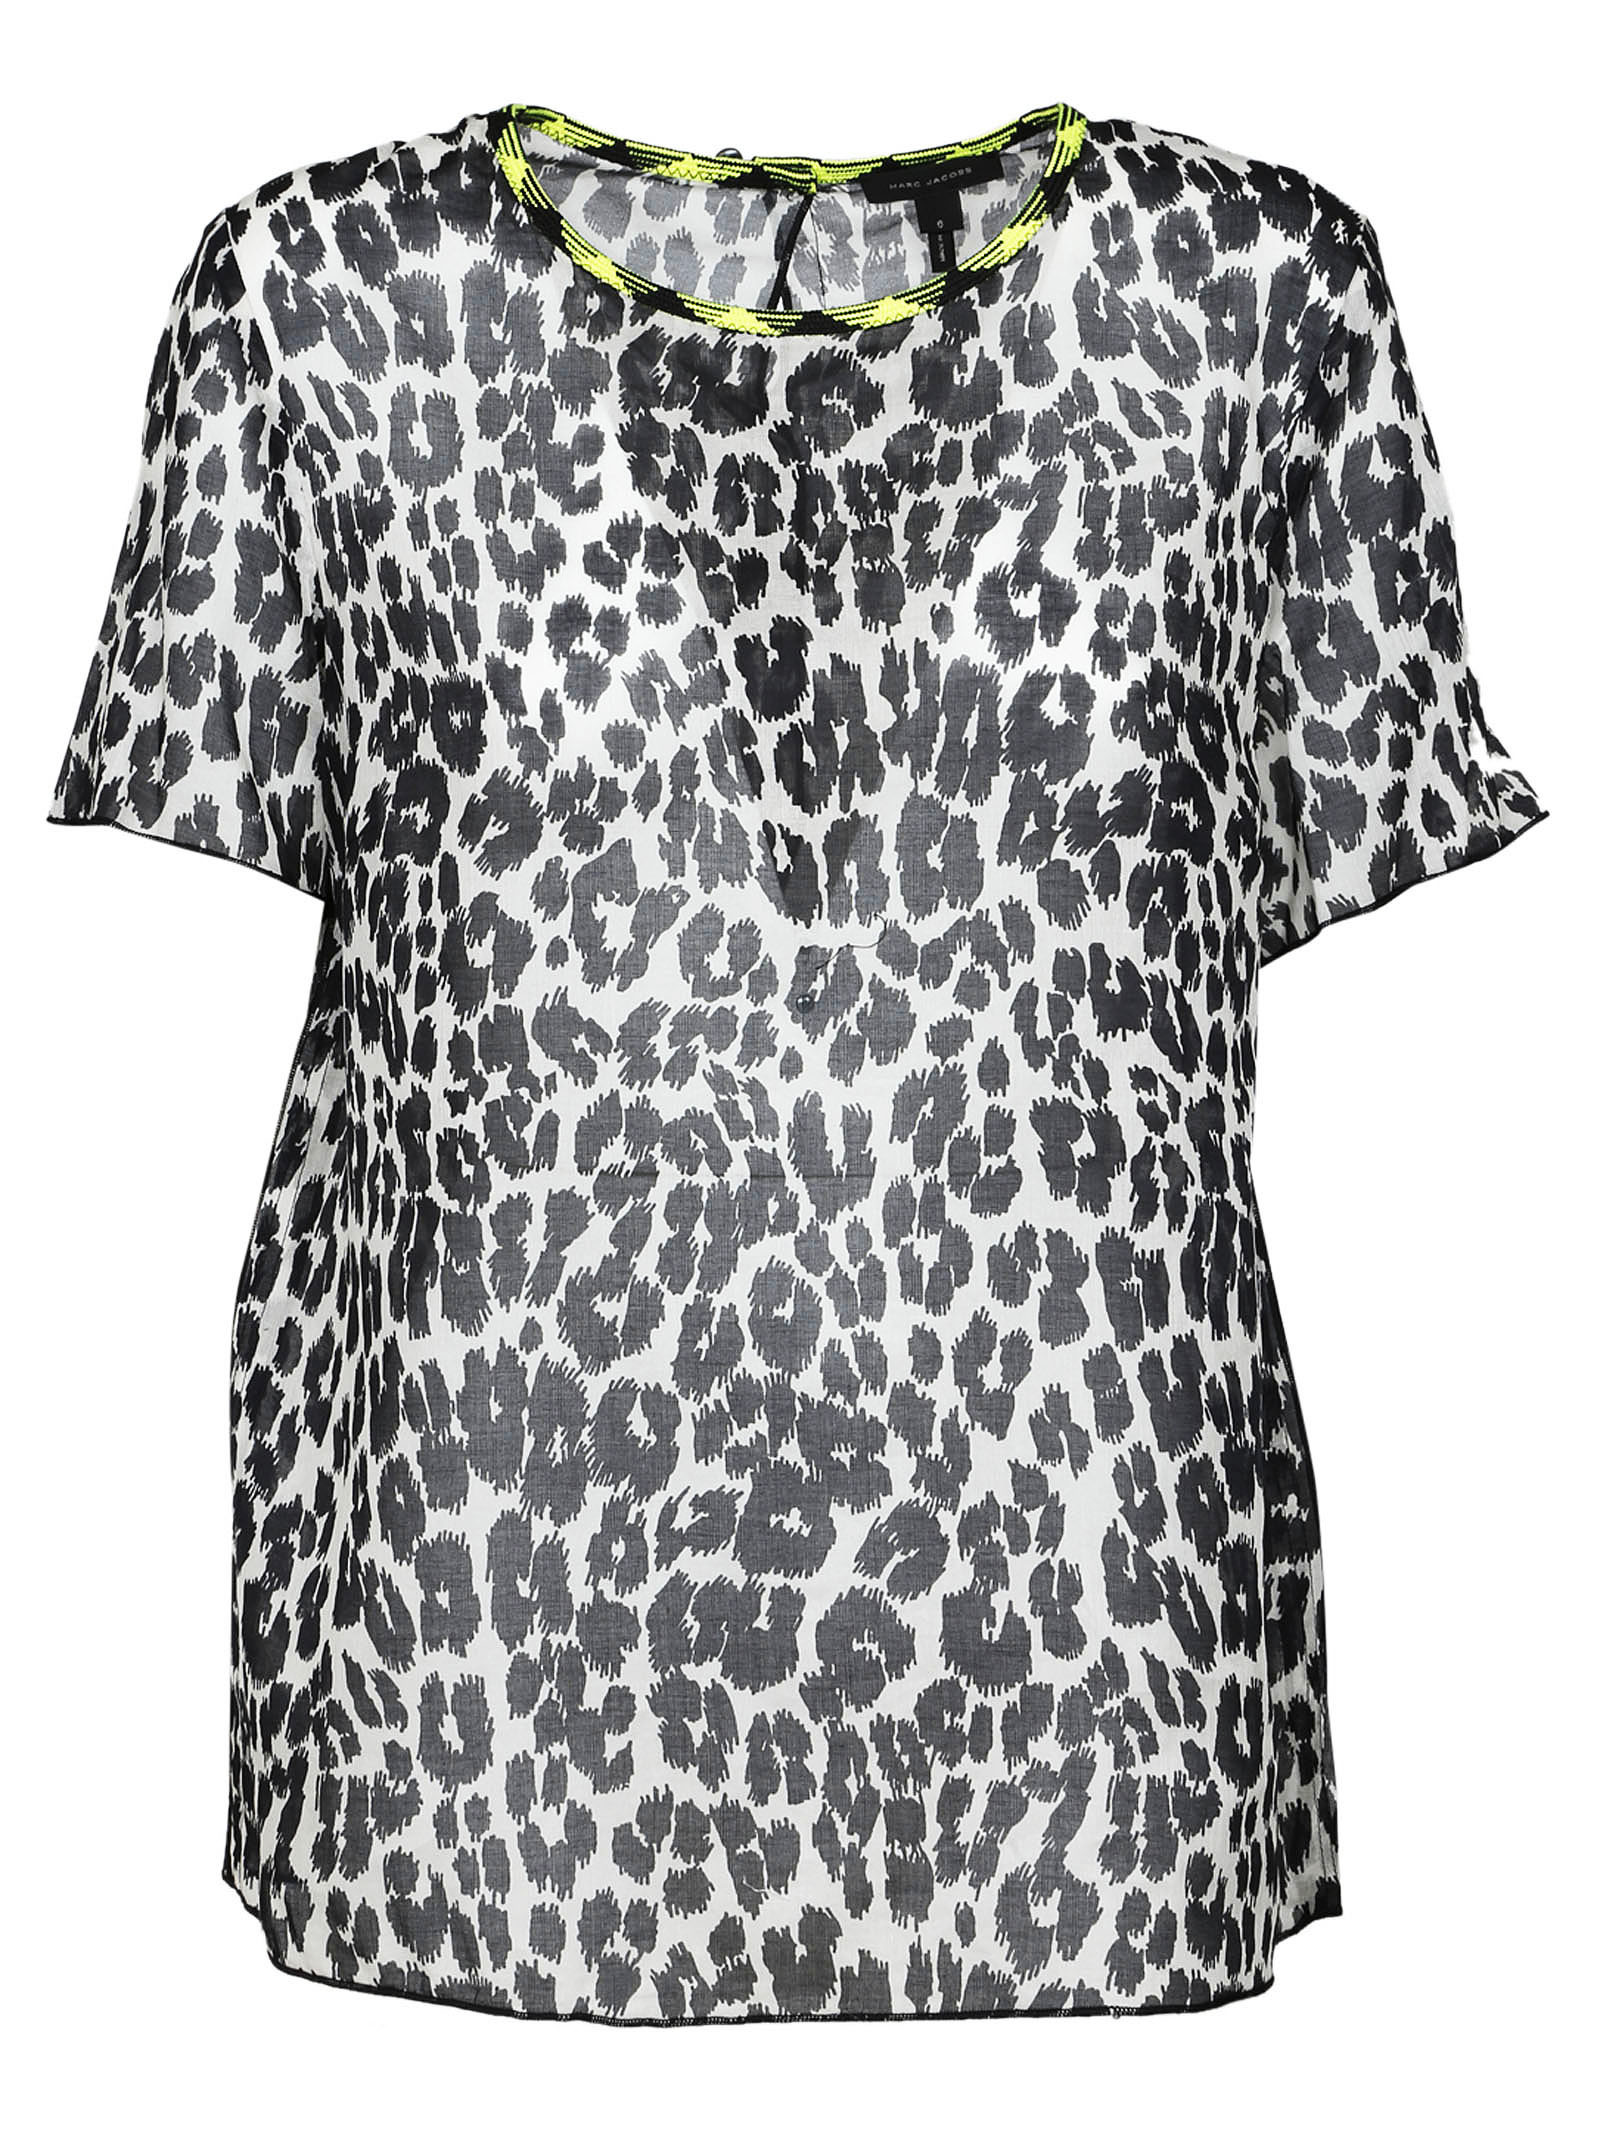 marc jacobs female marc jacobs leopard print top